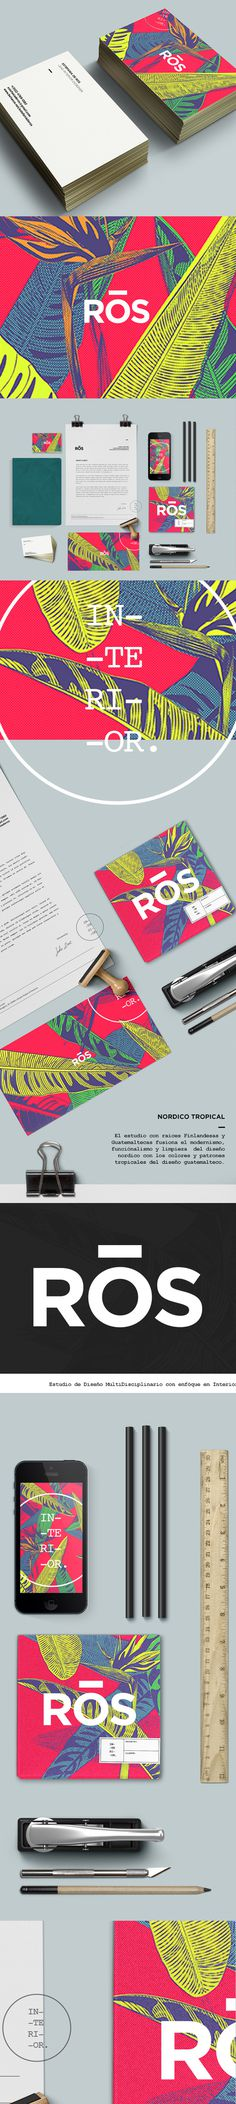 Ros Interior Design on Behance